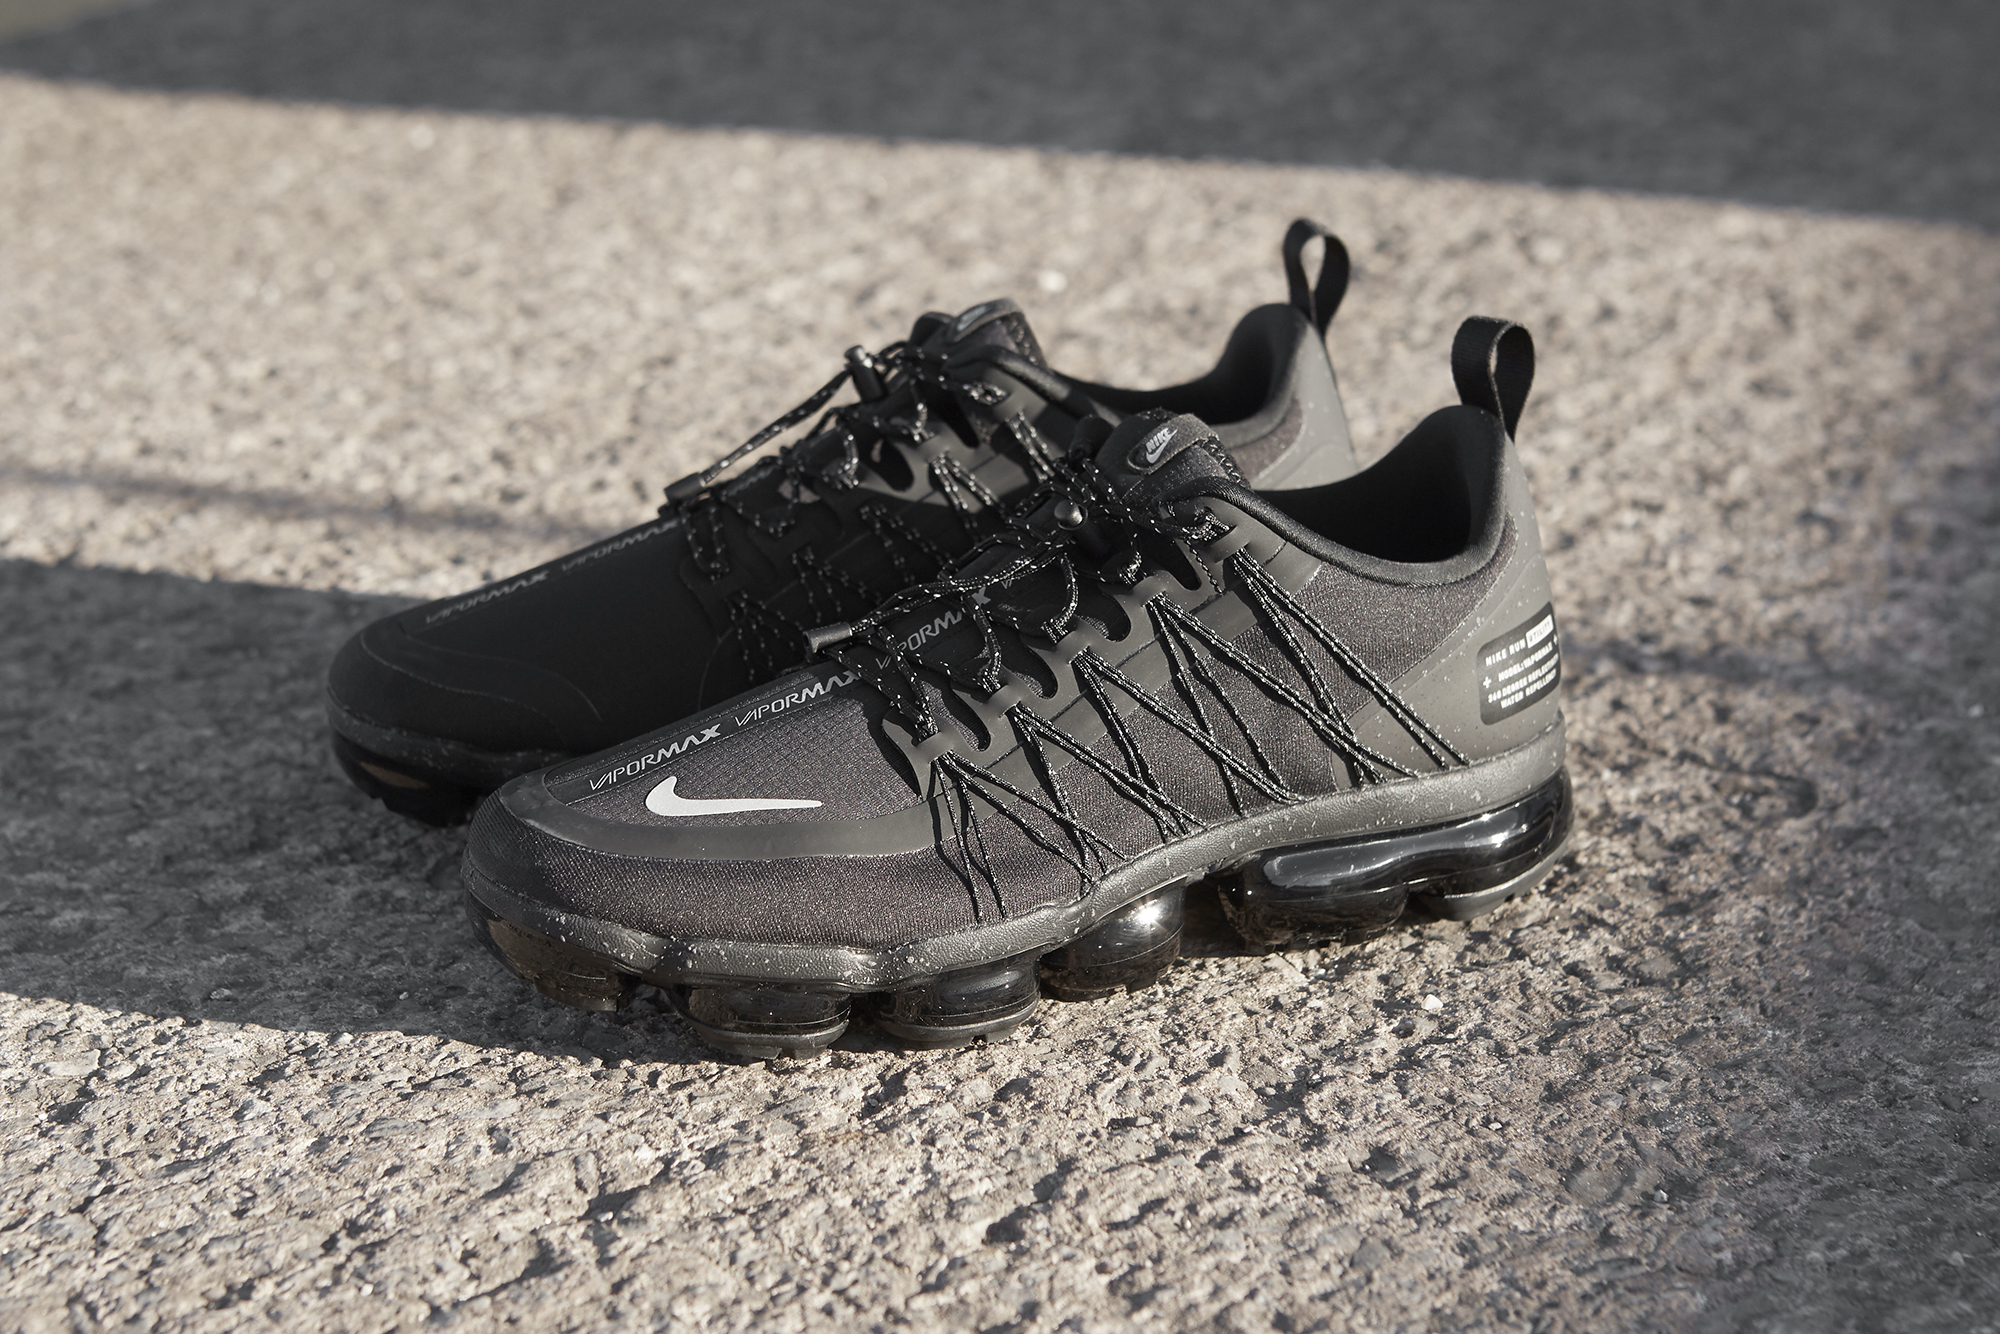 timeless design bc498 88e3e Nike Air VaporMax Utility Run 'Black/Black' and 'Olive/Black ...